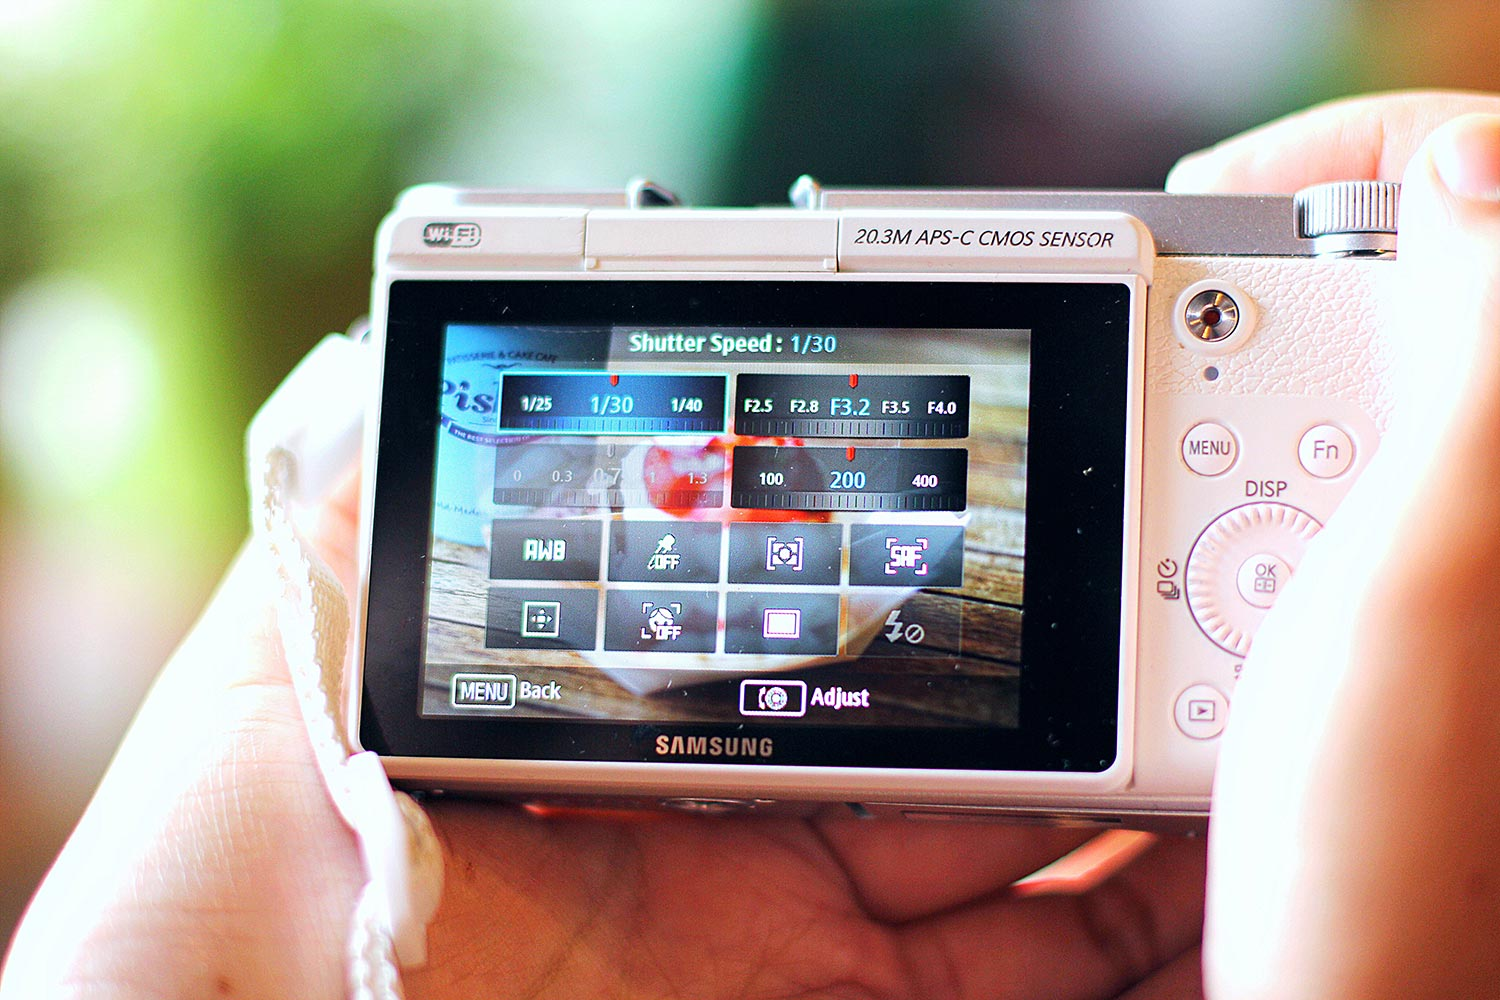 Screen showing manual functions in a camera